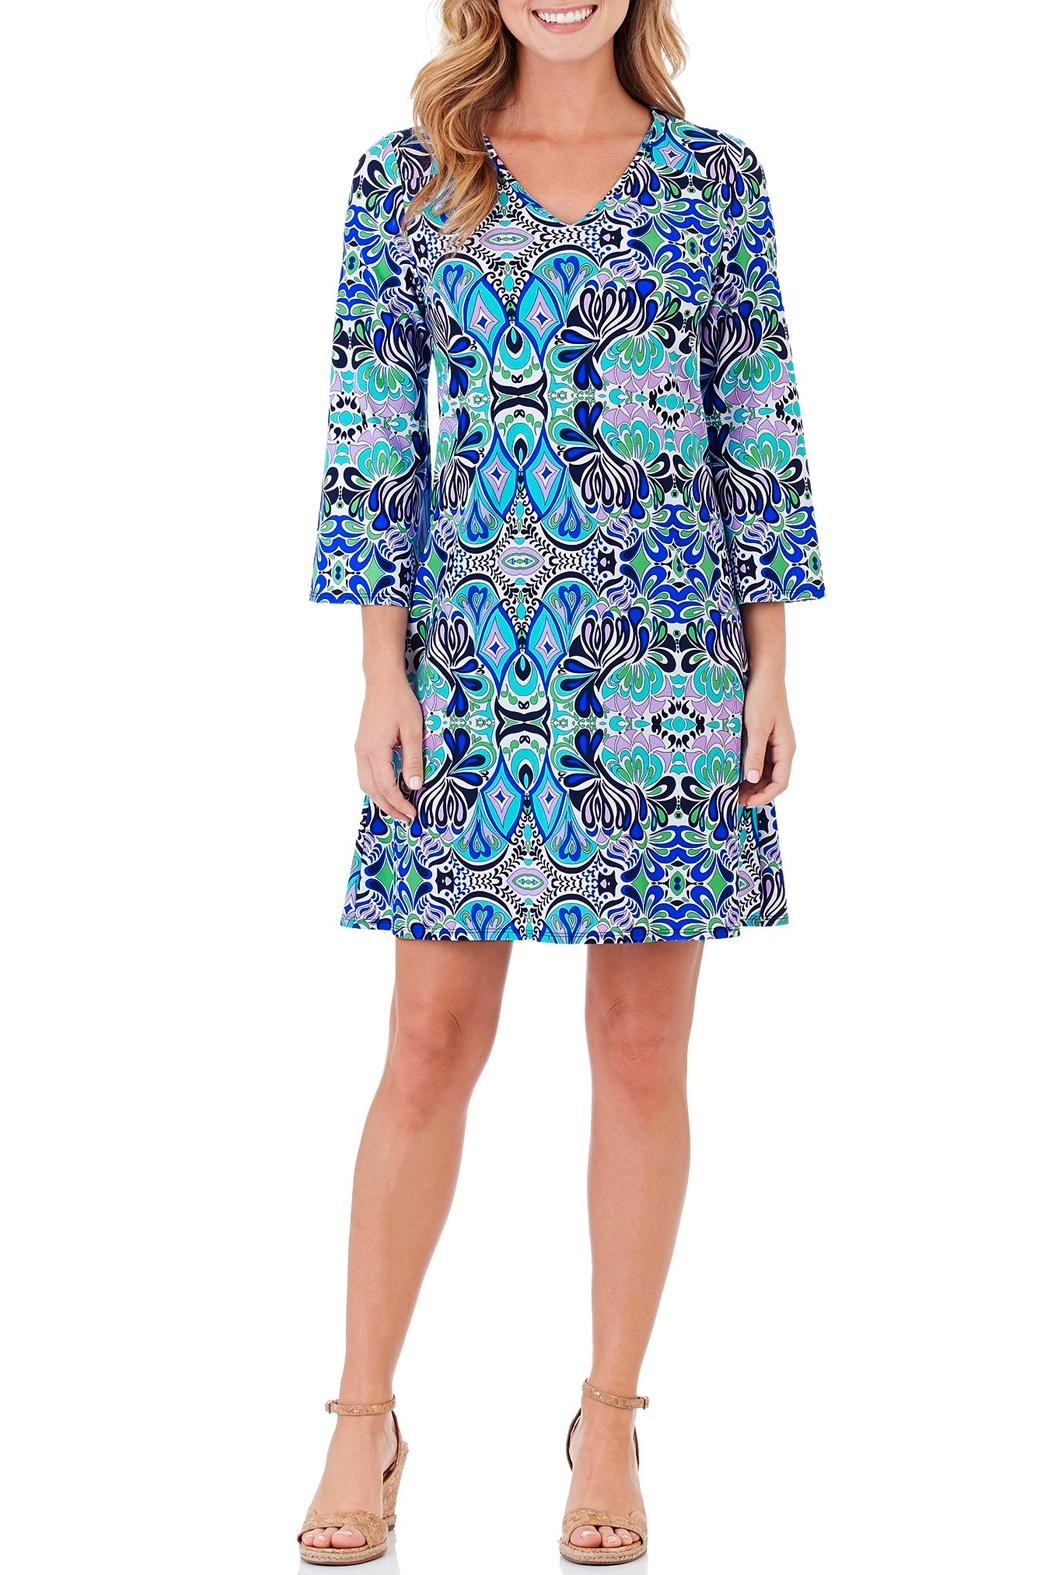 Jude Connally Lexi Shift Dress - Main Image